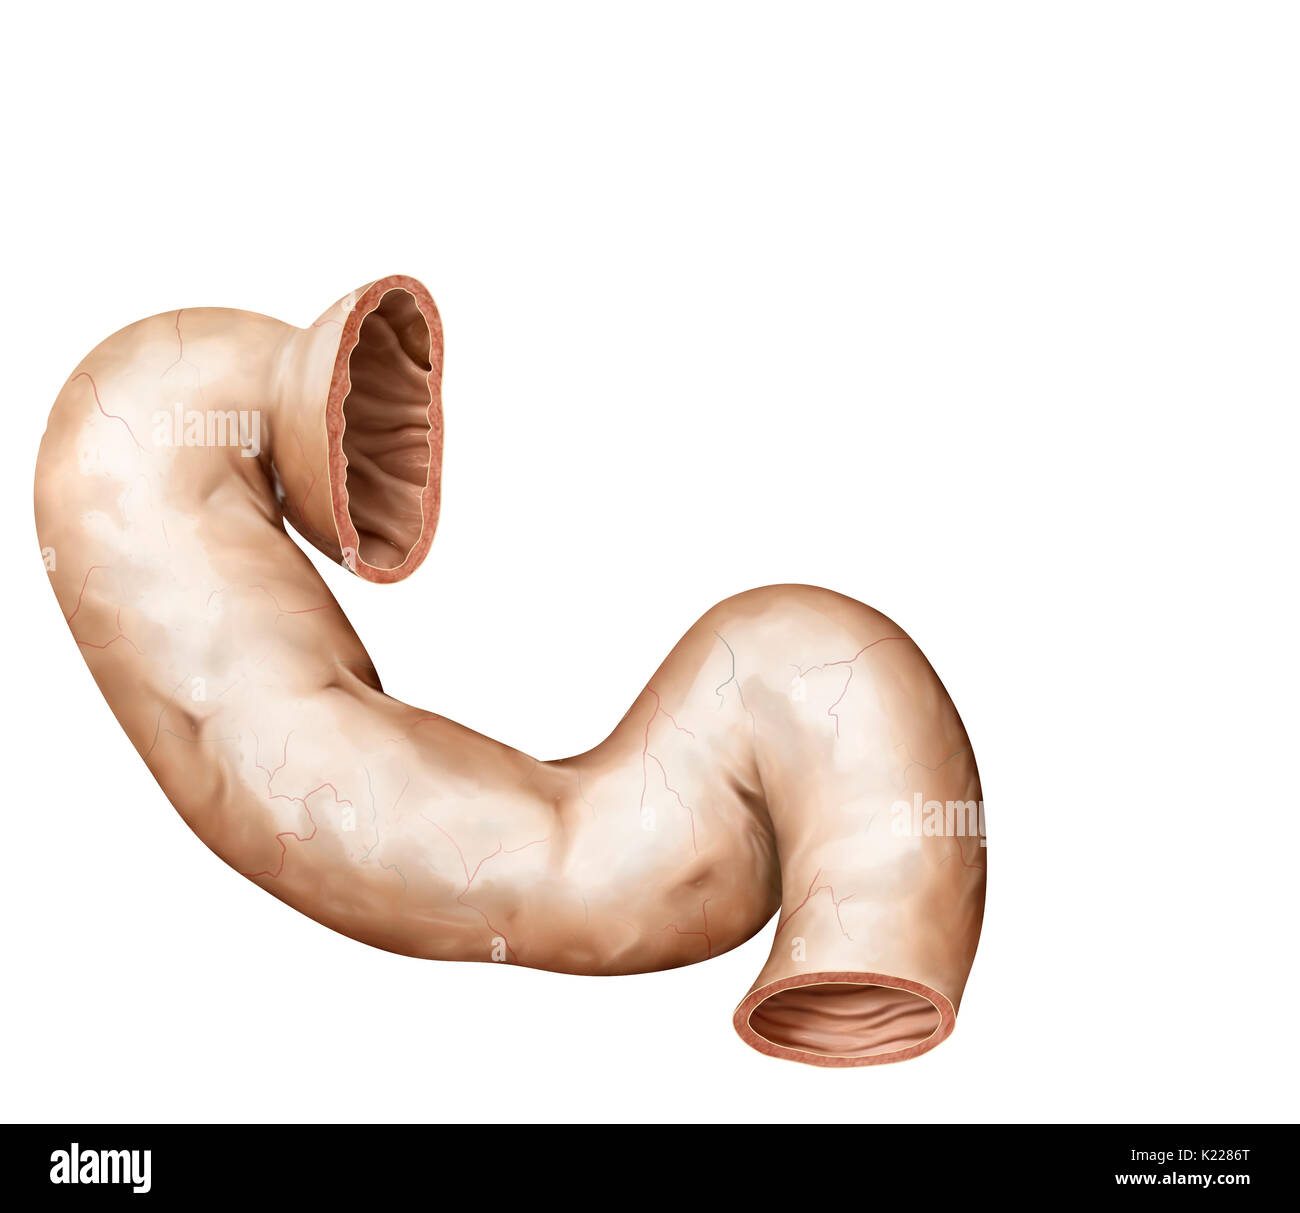 Pancreas Anatomy Stockfotos & Pancreas Anatomy Bilder - Alamy